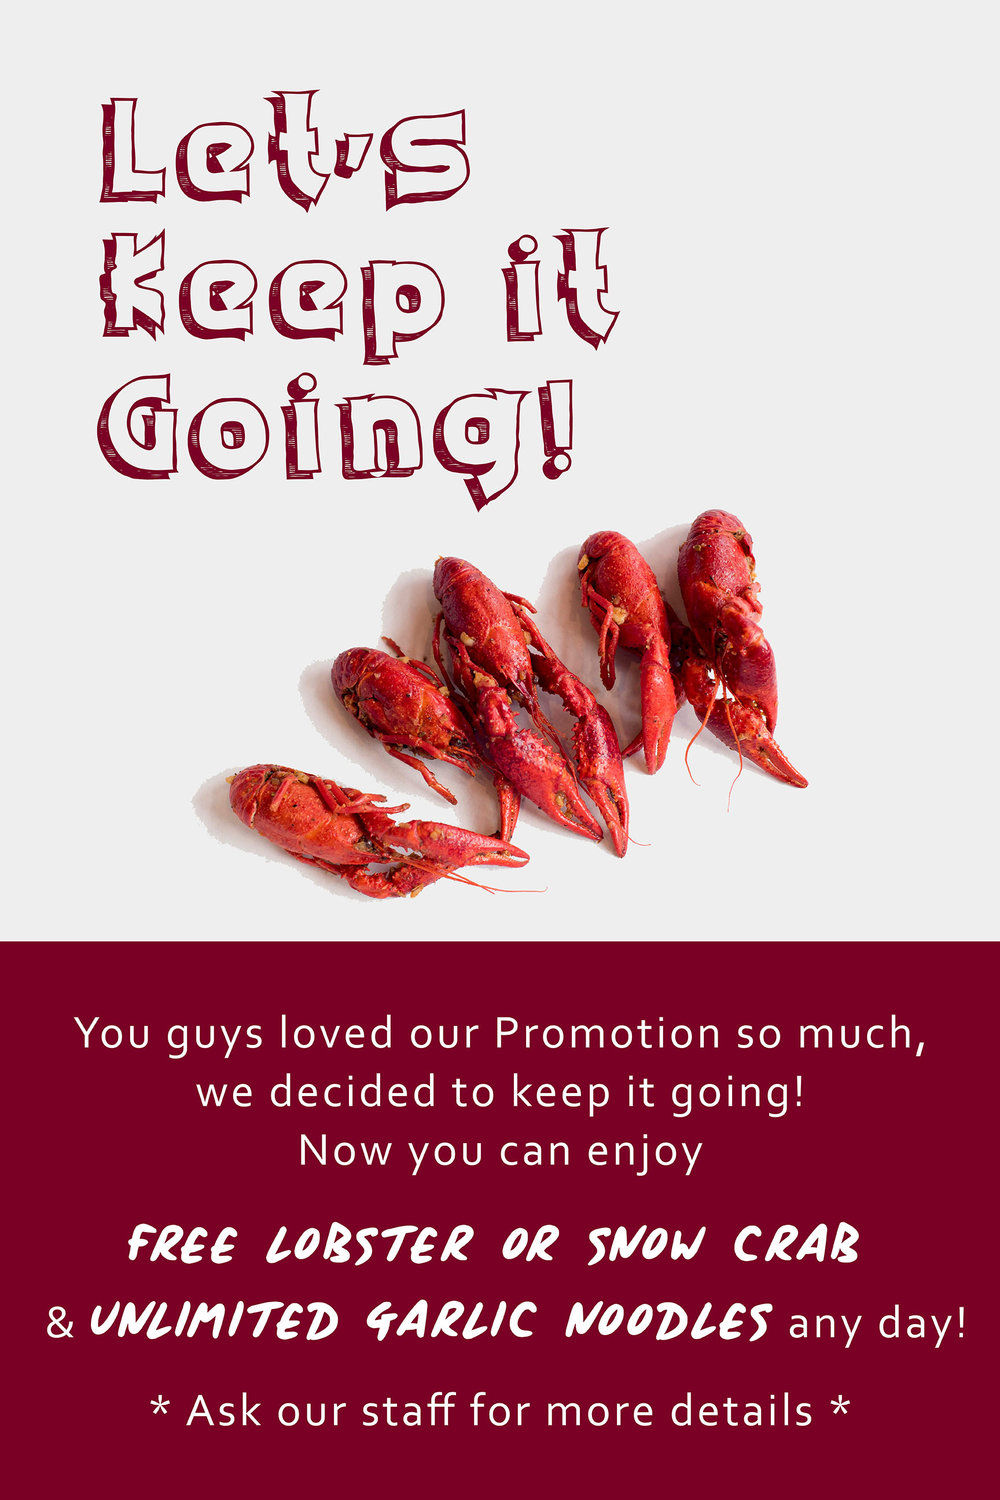 Now you can enjoy FREE LOBSTER, FREE SNOW CRAB, and Unlimited Garlic Noodles any day!     - When you order our combos you get one of the followings : Pick2 - Free French Fries or Garlic Noodles Pick3 - Free Crawfish or Mussels Pick 4 - Free Lobster or Snow Crab